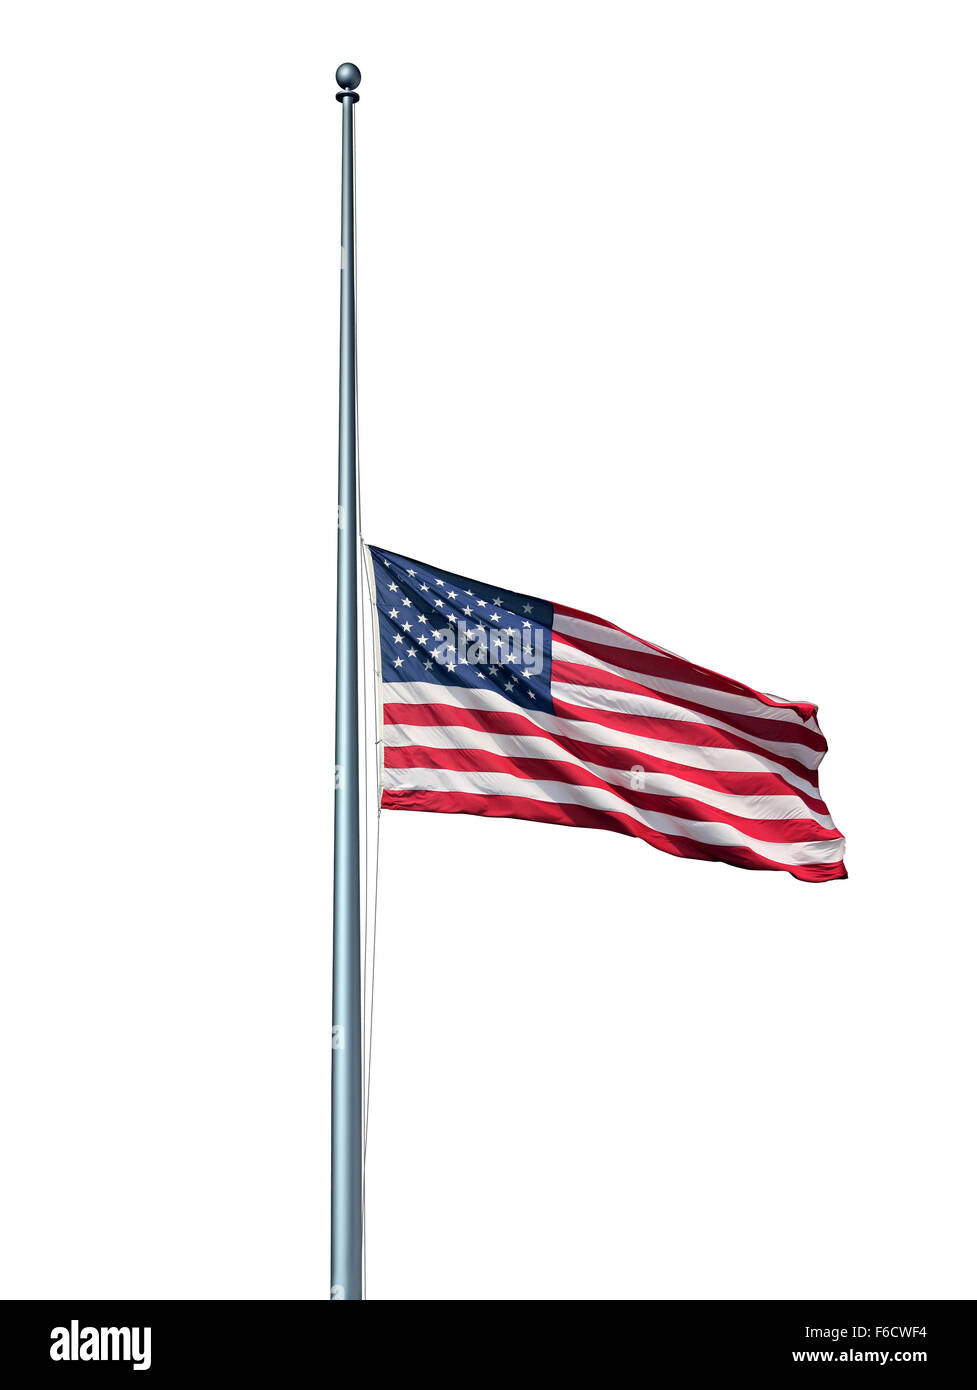 Half mast American flag isolated concept with the symbol of the United States flying at low level on the flagpole - Stock Image